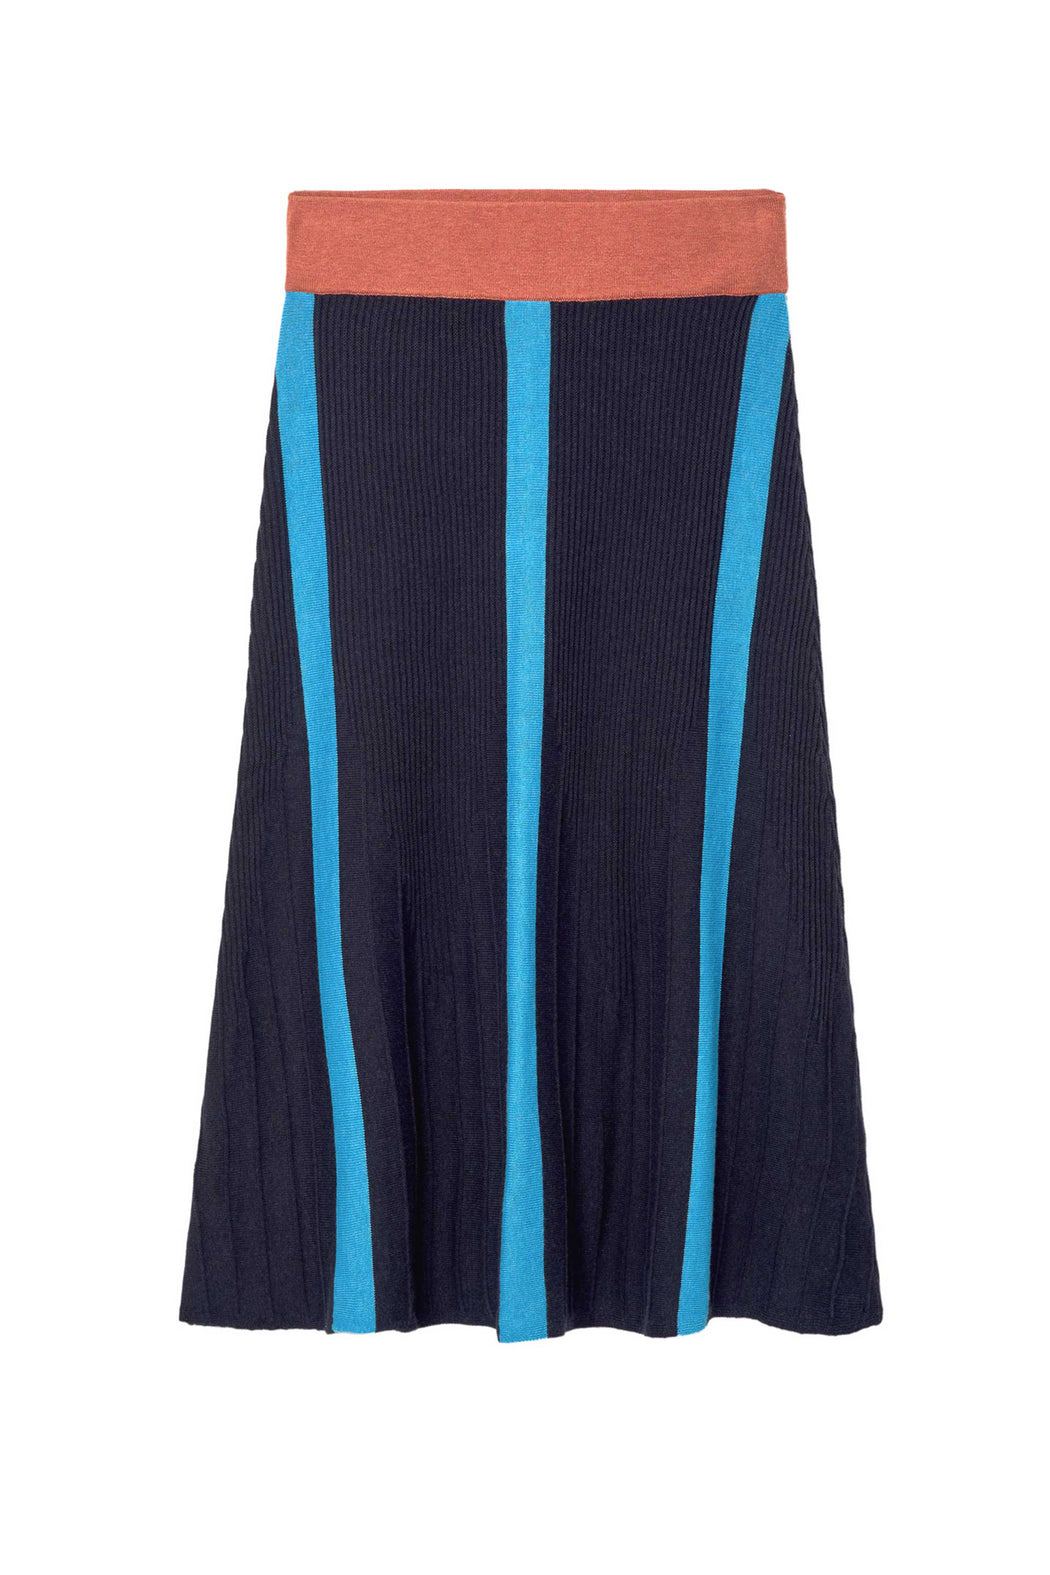 HEKATE Skirt B9 navy pale clay blue